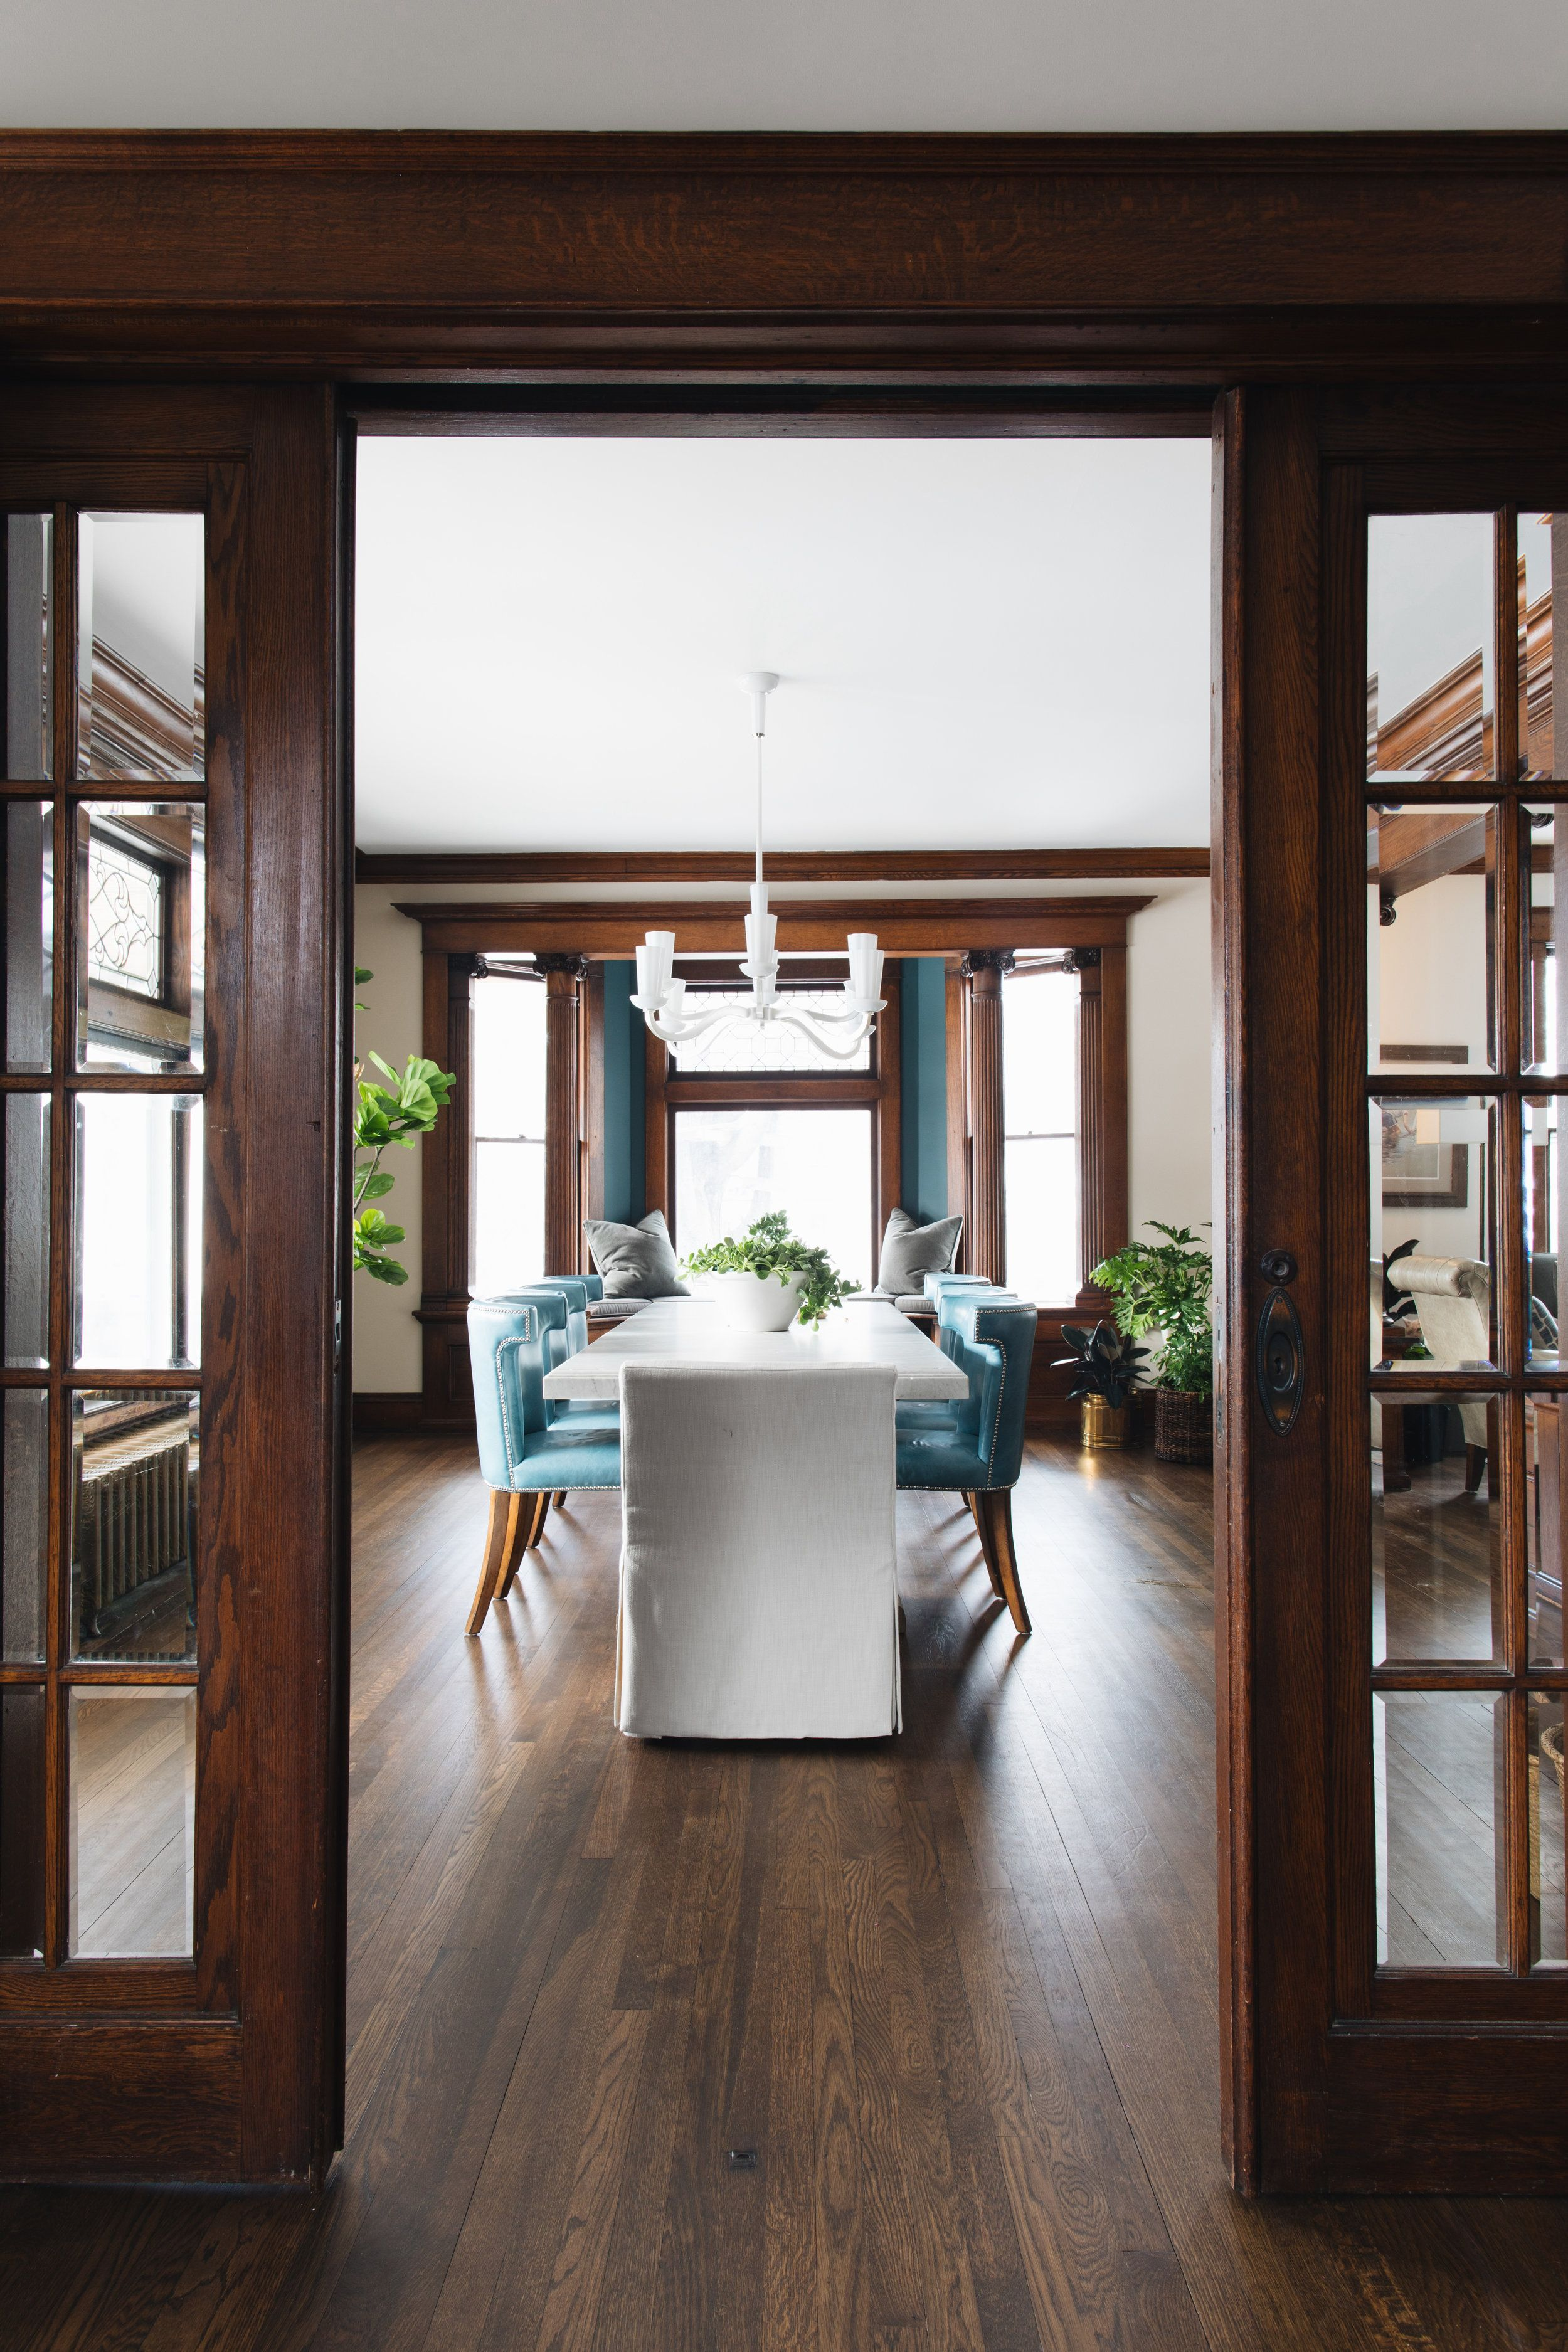 New House Image By Amanda Hutchings O Kelly In 2020 Dining Room